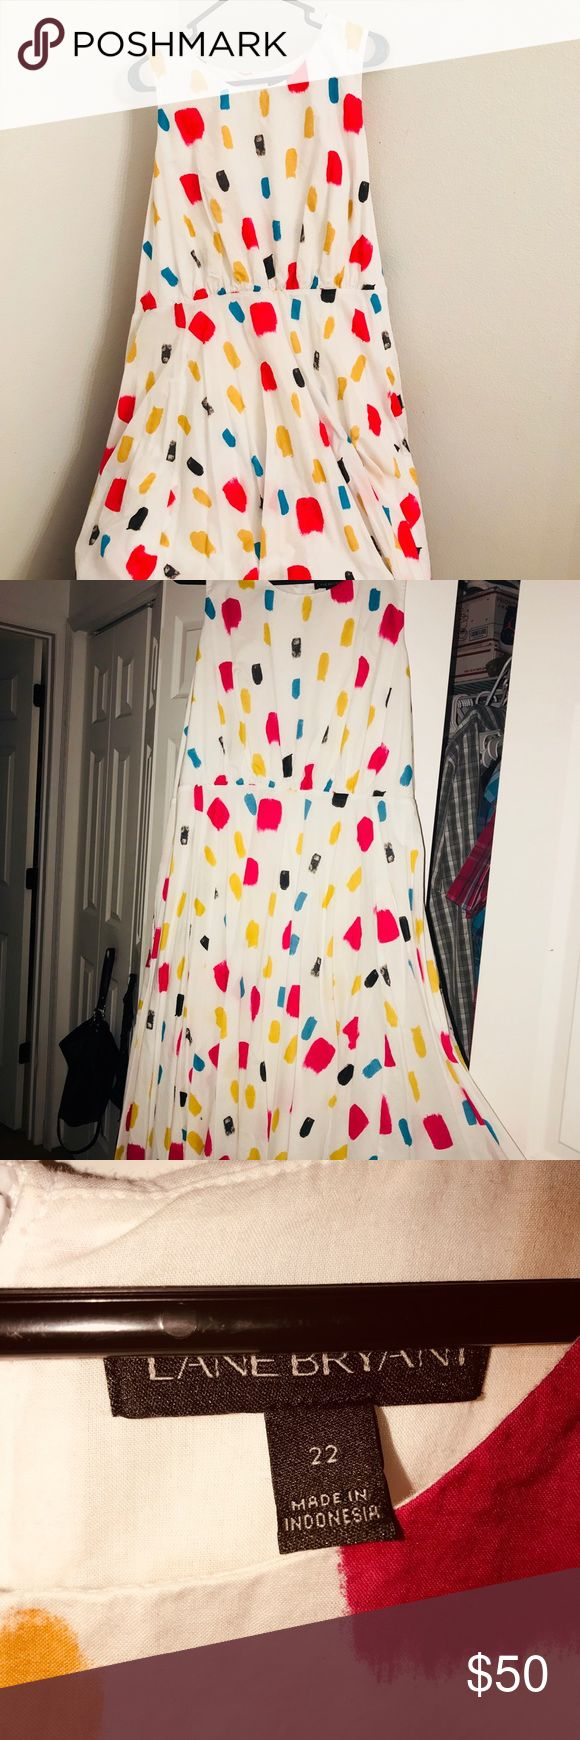 Lane Bryant plus size Printed tulip hem dress Beautiful 100% cotton fit and flare dress from Lane Bryant size 22. Zips in the back and has pockets . Very comfy and  flattering. Only worn once to a wedding reception. Lane Bryant Dresses